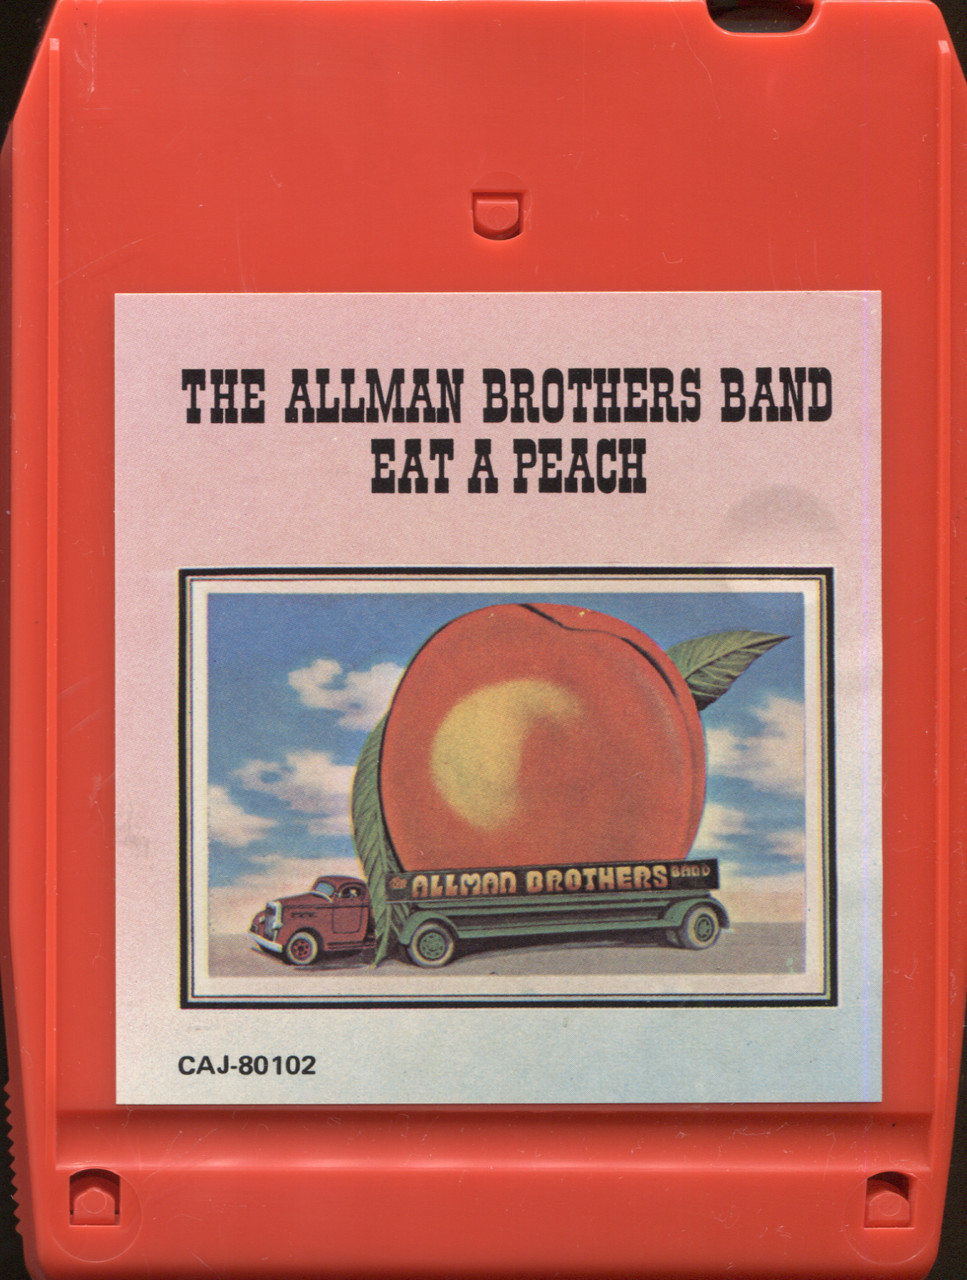 The Allman Brothers Band: Eat a Peach -30694 8 Track Tape